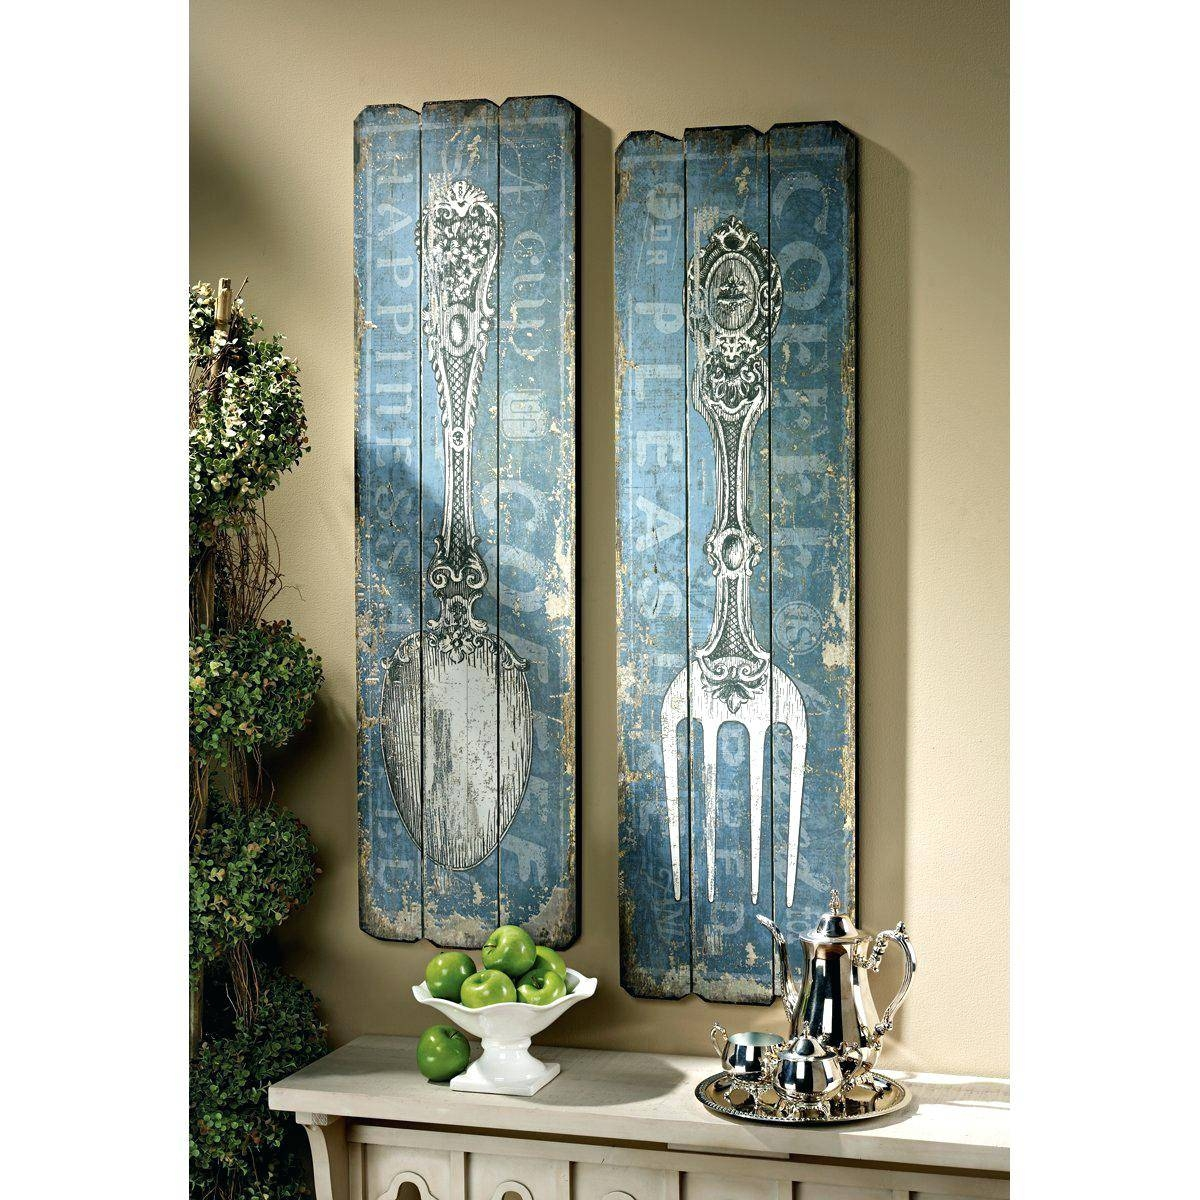 Wall Decor: Chic Large Spoon Wall Decor For Your House (View 17 of 25)